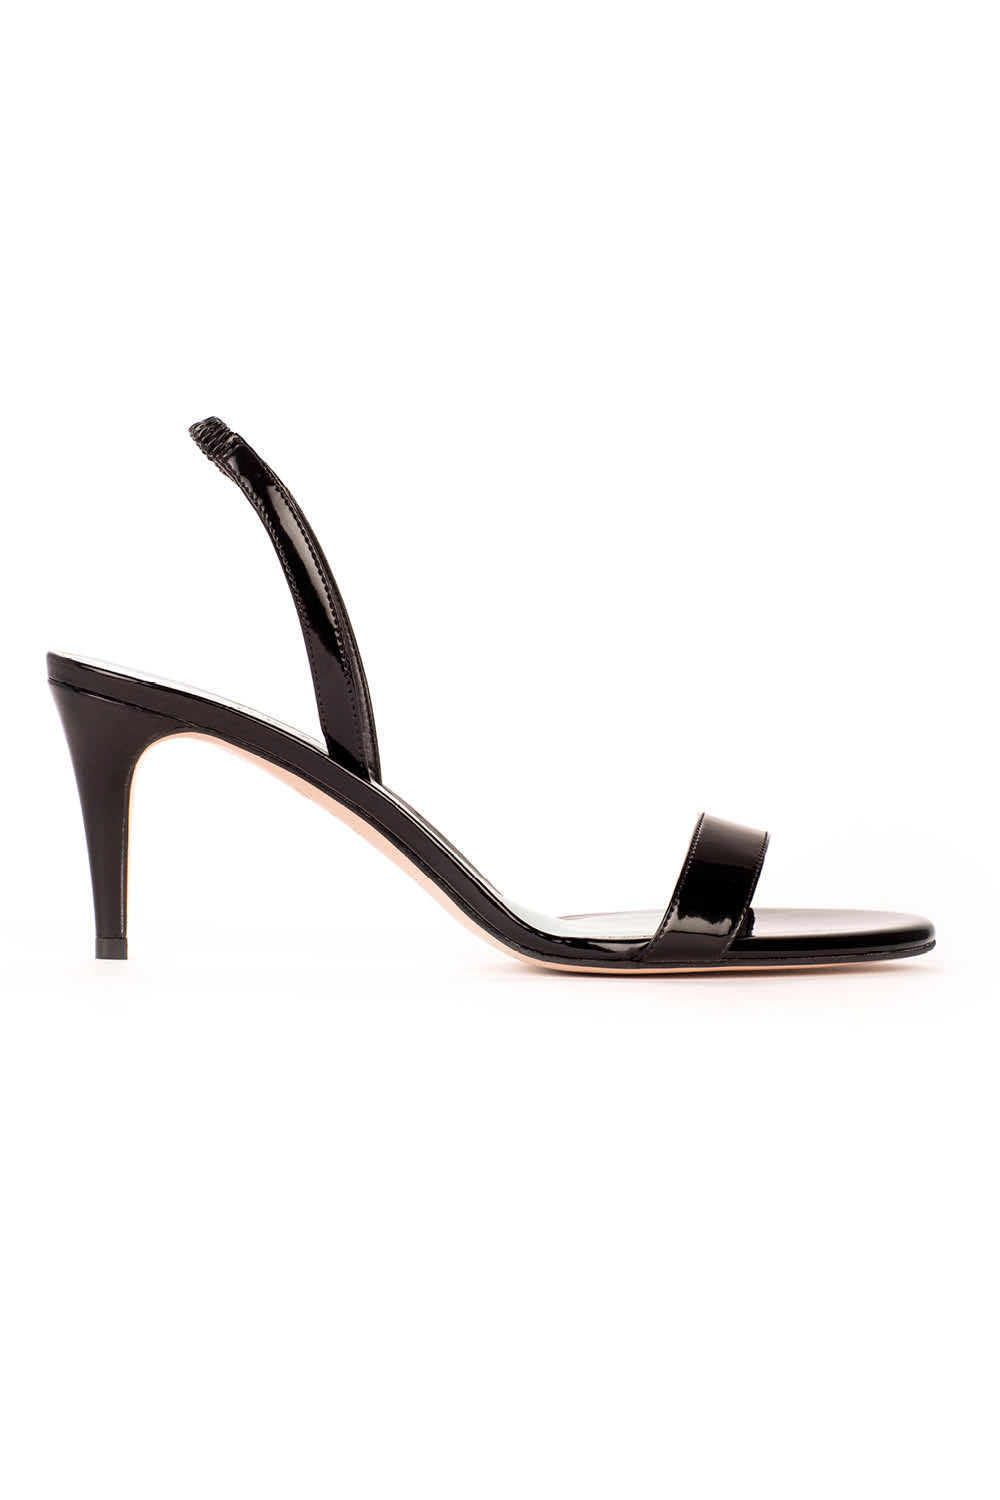 Sally in Black Patent Effect